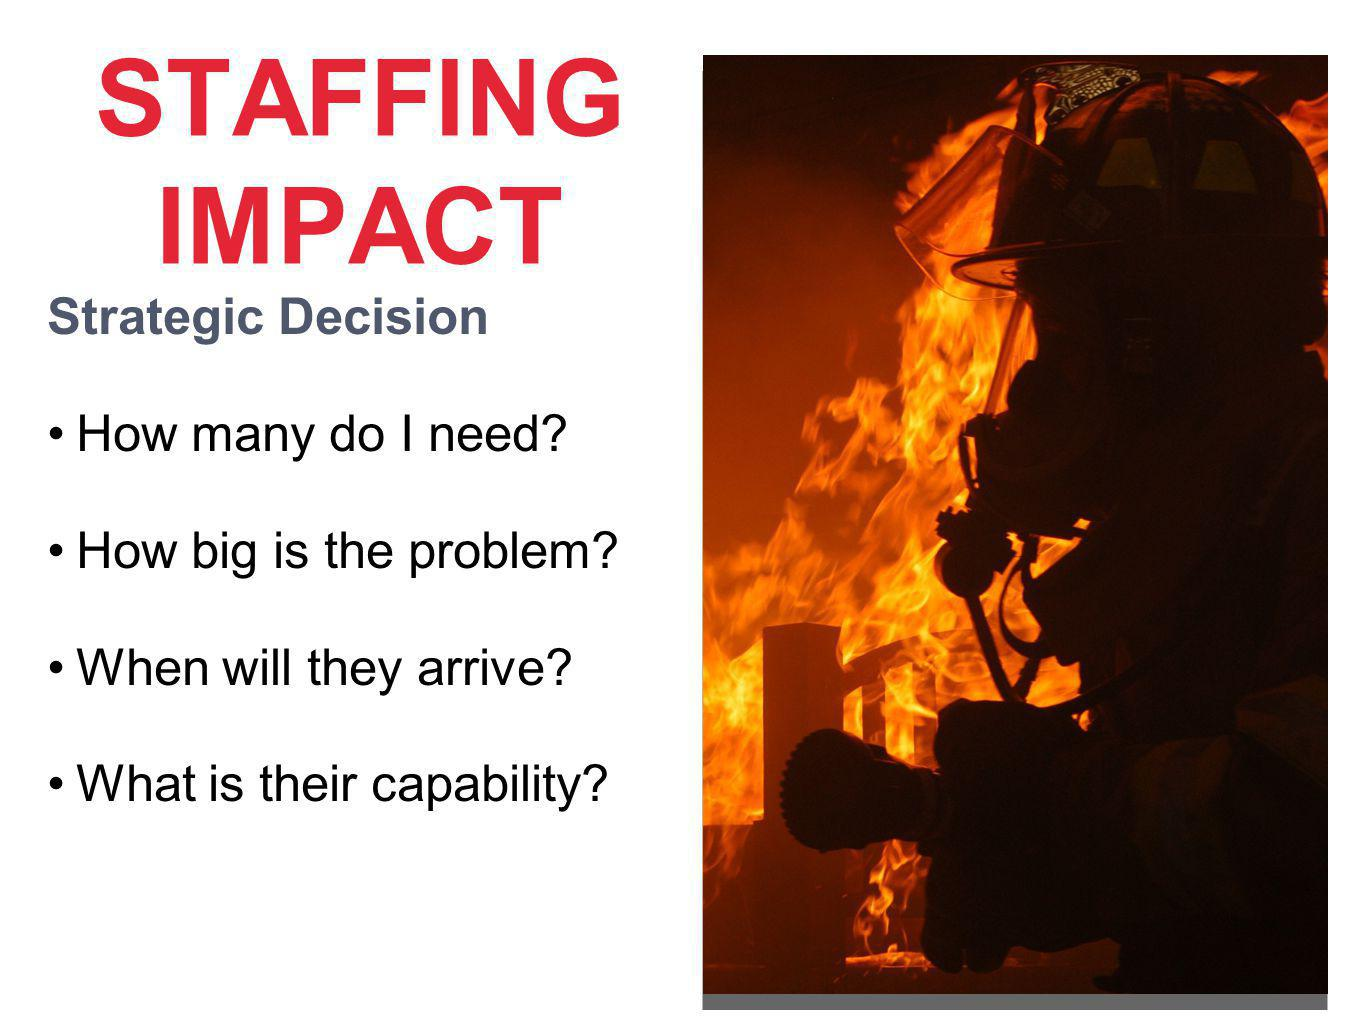 STAFFING IMPACT Strategic Decision How many do I need? How big is the problem? When will they arrive? What is their capability?